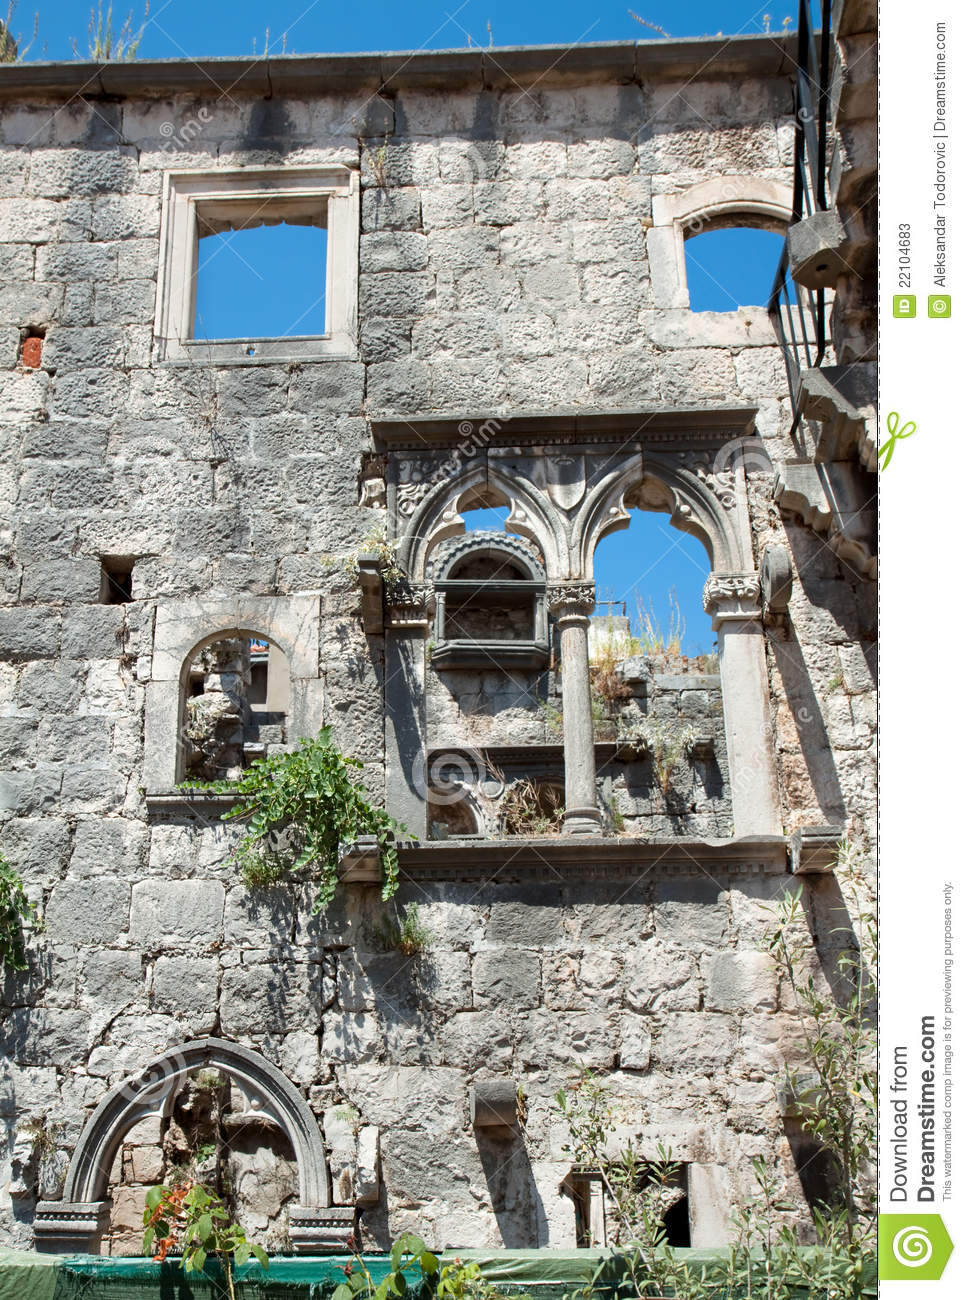 home of marco polo on the island of korcula stock image. Black Bedroom Furniture Sets. Home Design Ideas